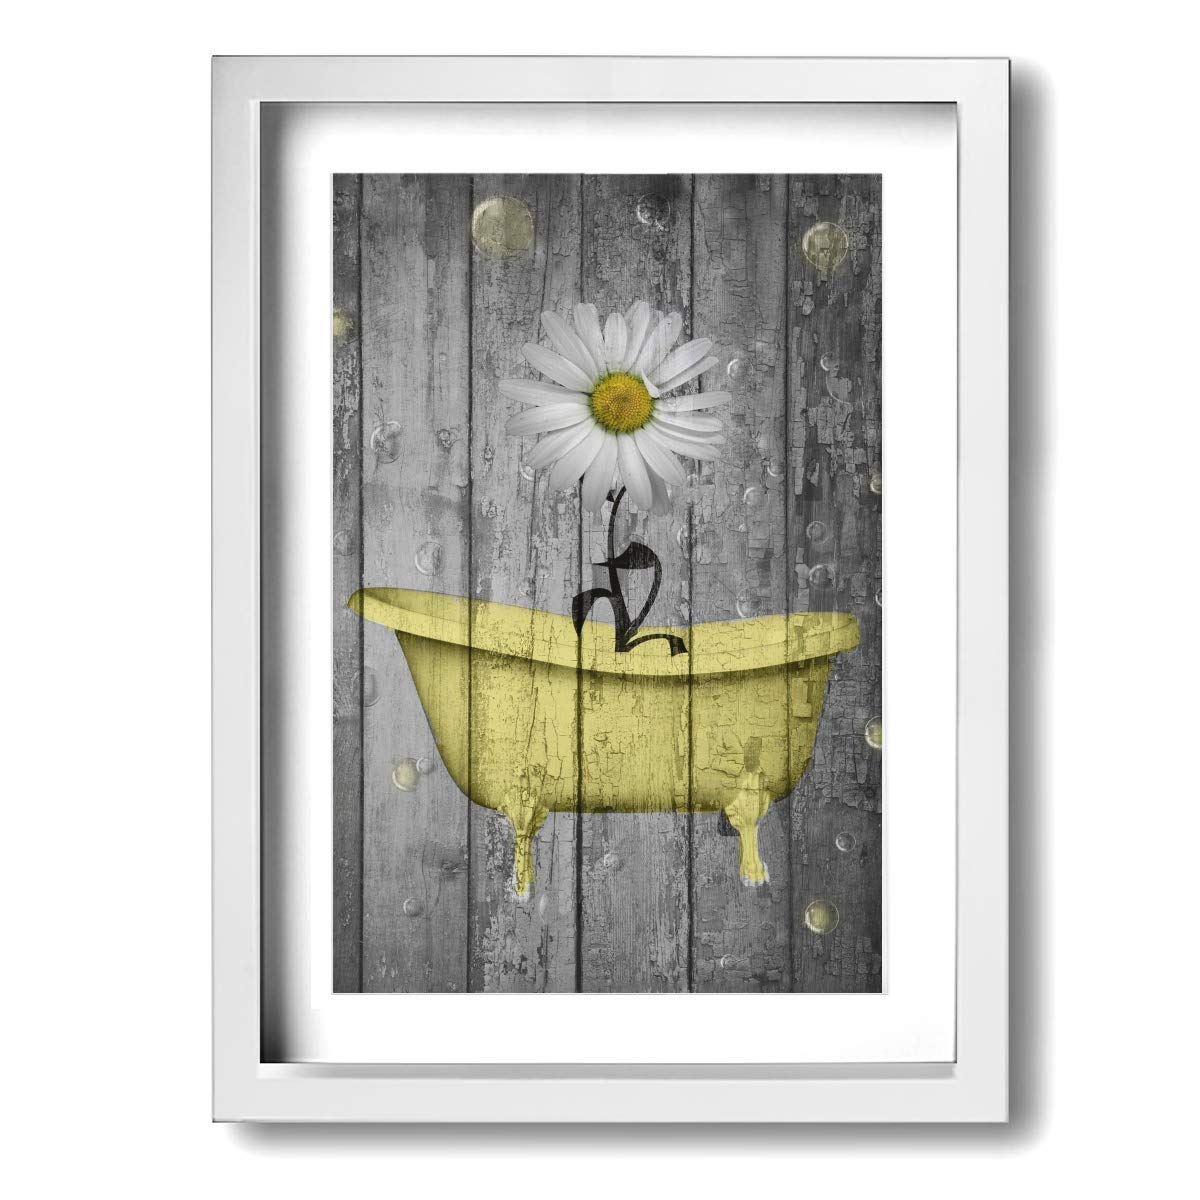 Super Ale Art Rustic Picture Frame Bathroom Wall Art Daisy Flower Bubbles Yellow Gray Vintage Rustic Bath Wall Art Ready To Hang For Wall Decor Interior Design Ideas Jittwwsoteloinfo